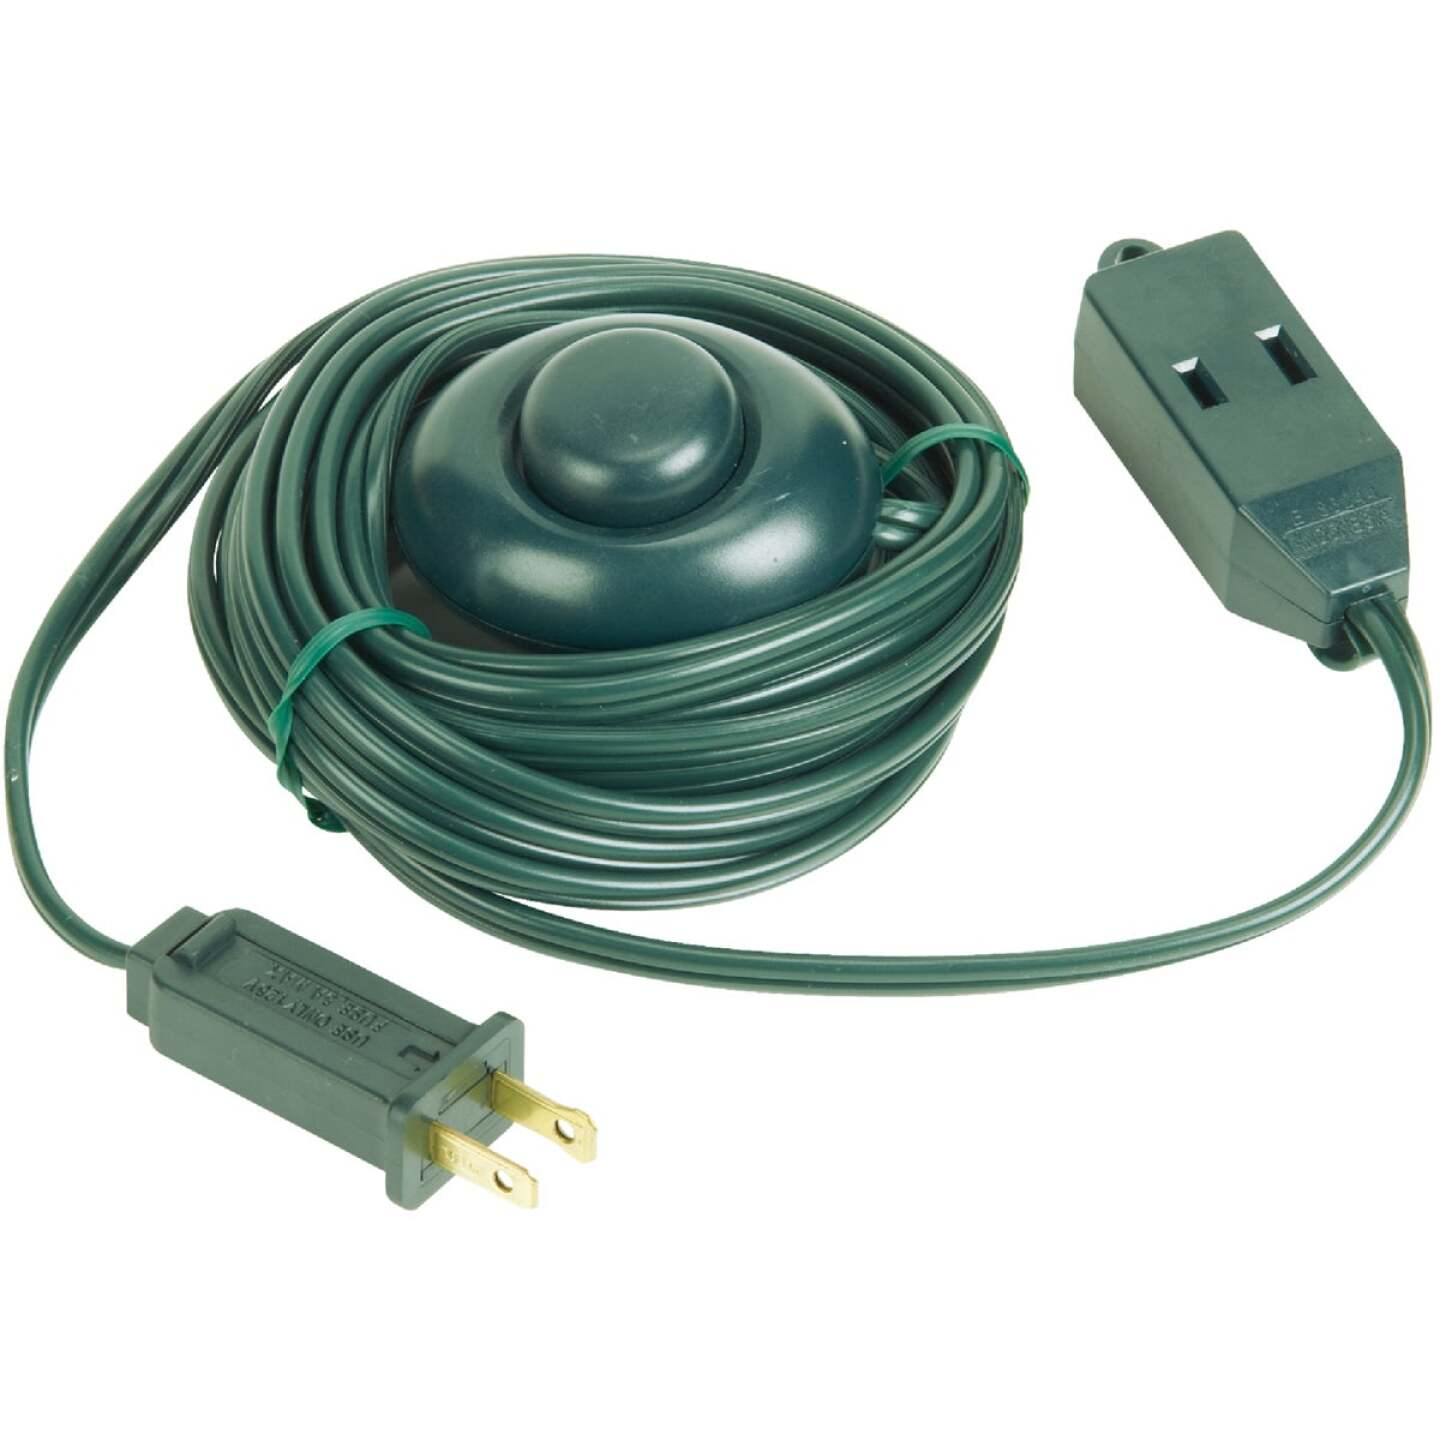 Do it 15 Ft. 18/2 Green Extension Cord with Foot Switch Image 1